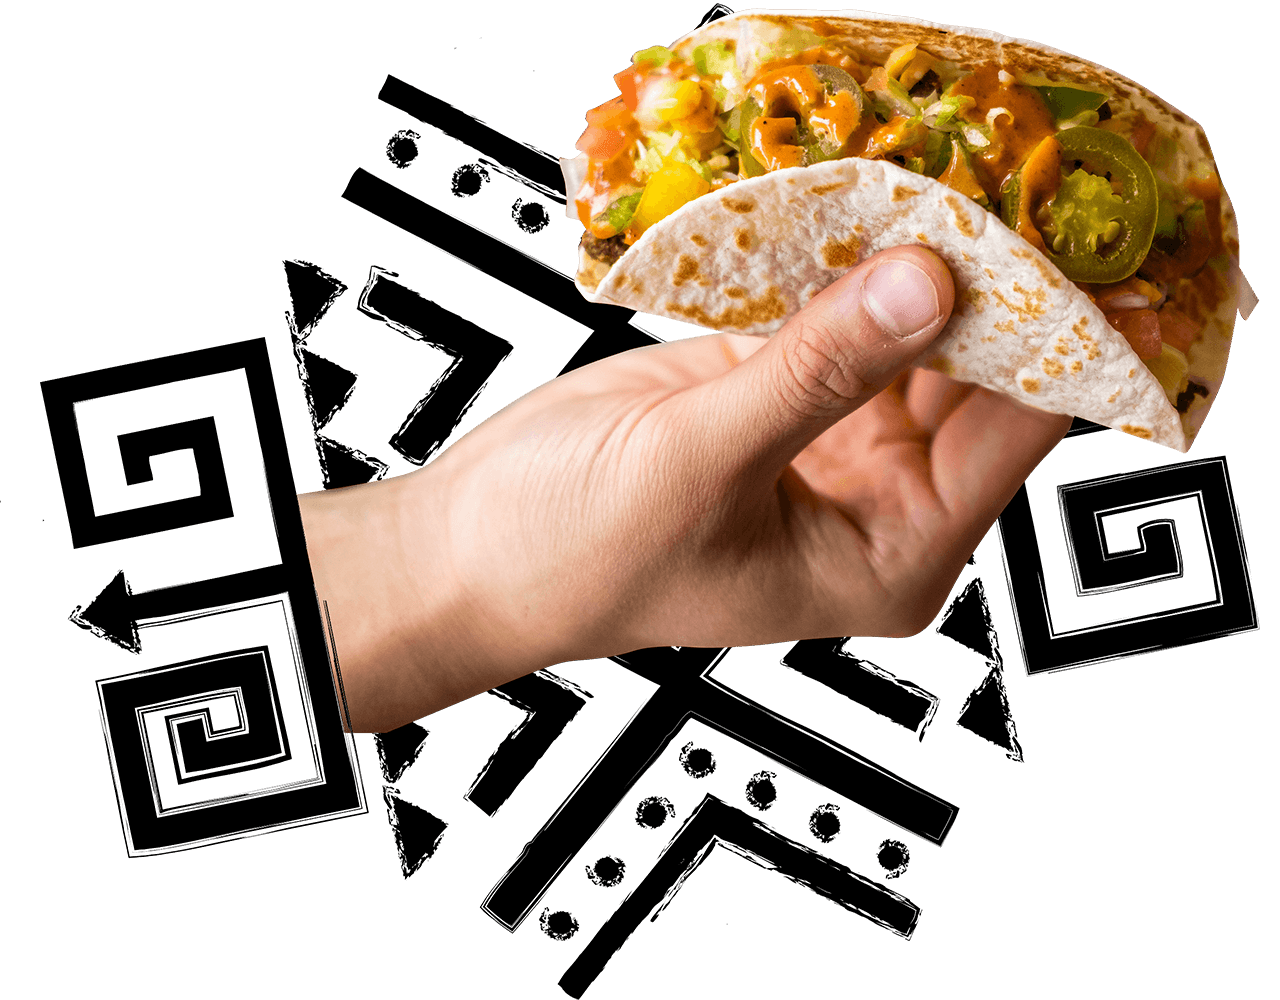 person holding taco